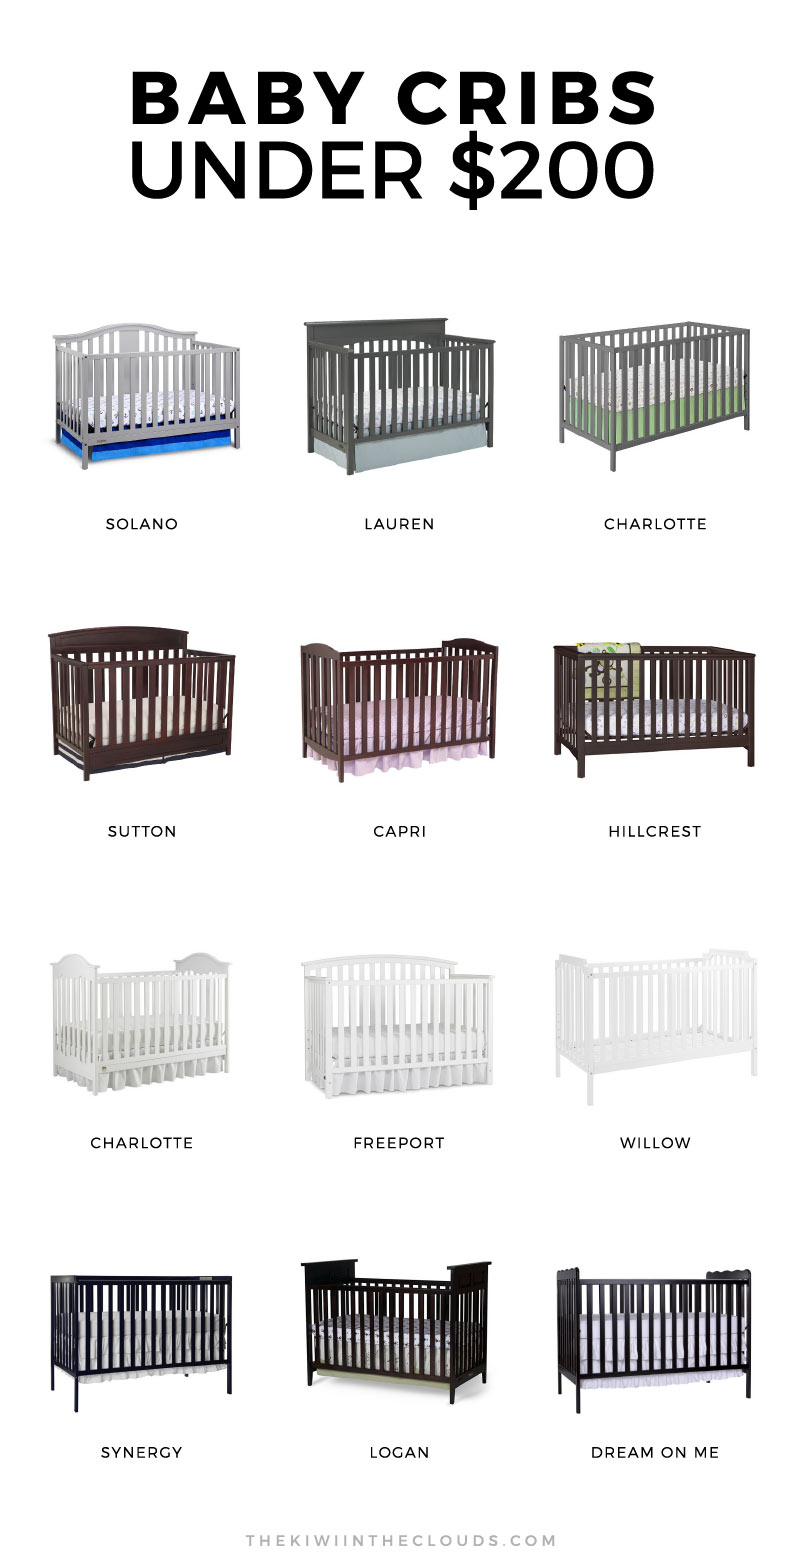 Feeling like you're way over budget on the baby's room? Then you NEED to check out these baby cribs under 200 dollars. There's an affordable crib here for everyone in every style from modern, to vintage, to traditional and more!